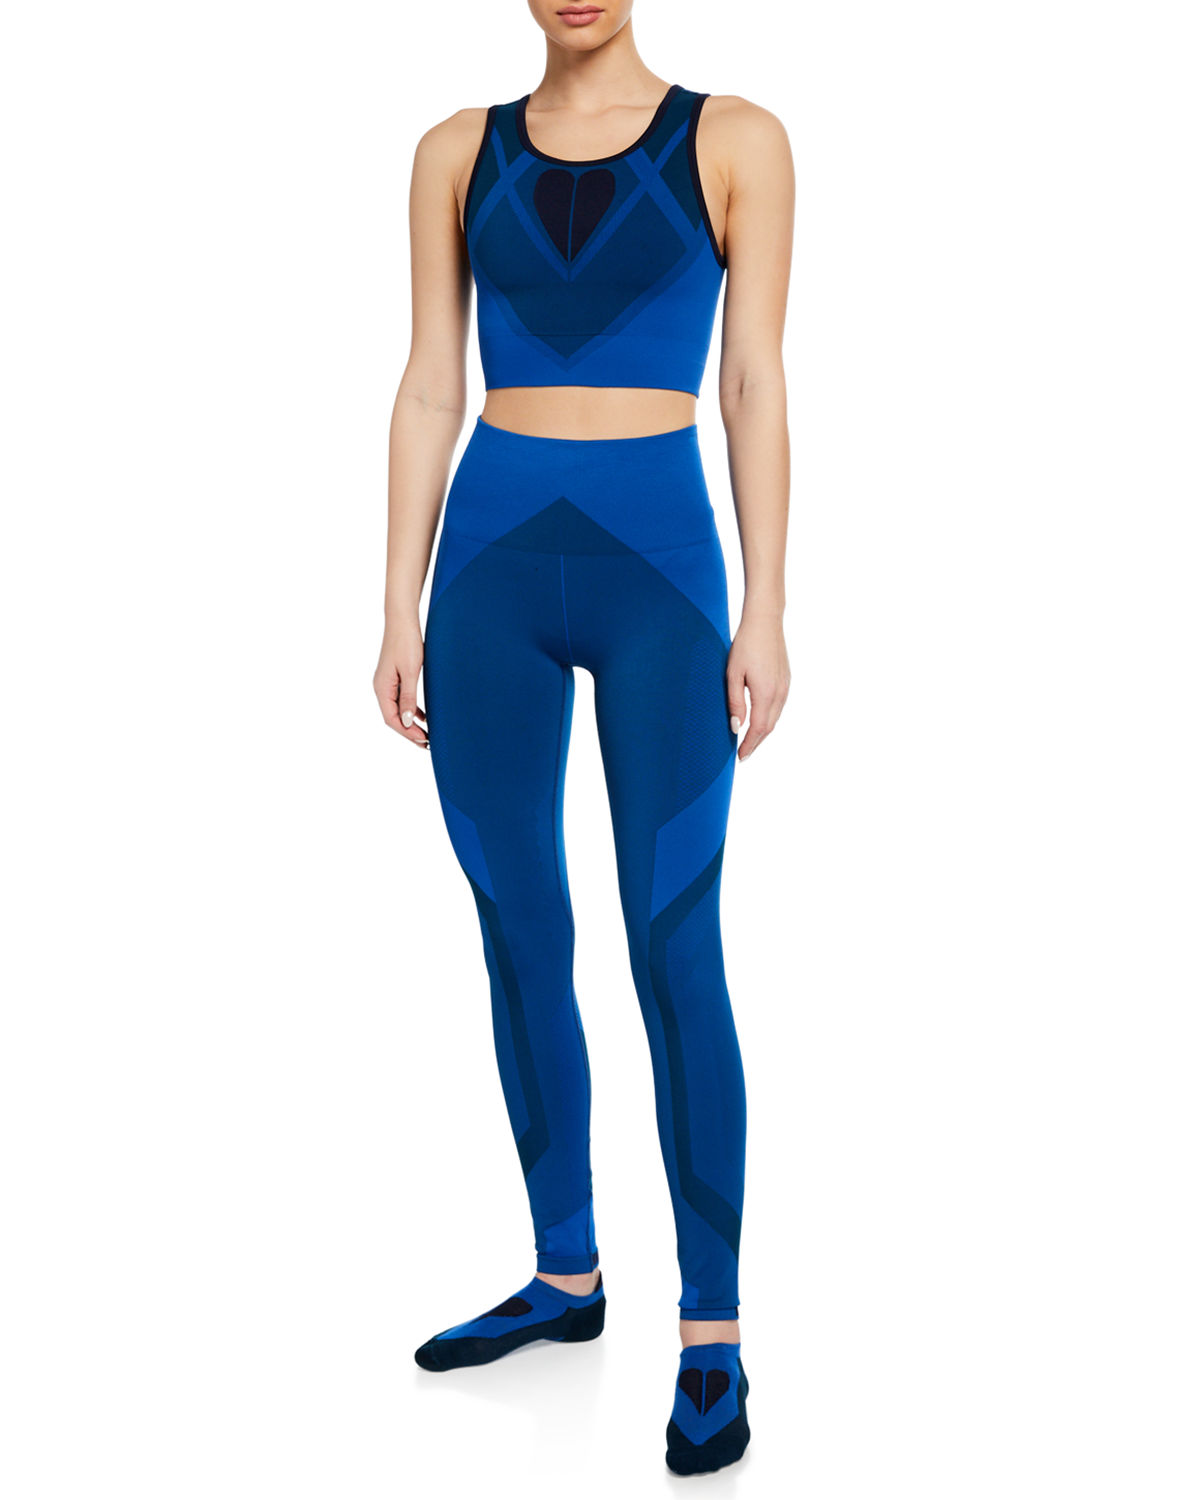 485bbe693dc0a LNDR Seamless Sports Bra & Leggings Gift Set with Matching Socks ...